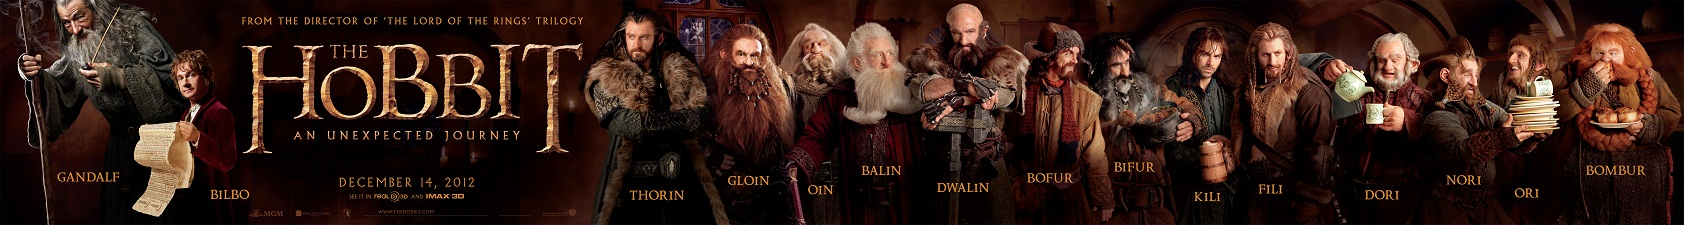 the-hobbit-an-unexpected-journey-dwarf-banner